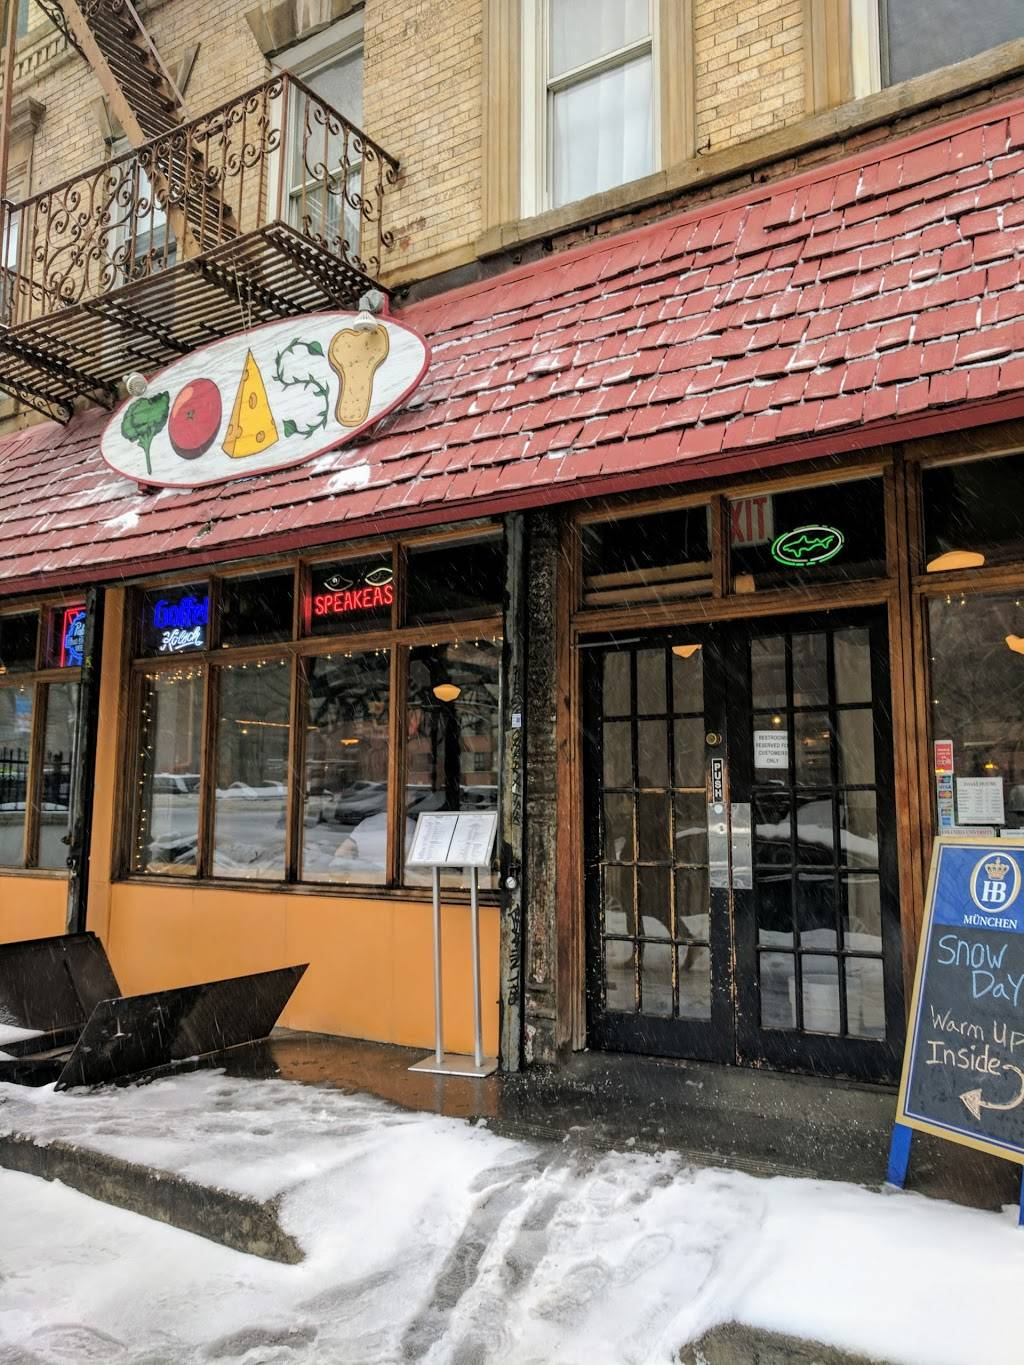 Toast Uptown | meal takeaway | 3157 Broadway, New York, NY 10027, USA | 2126621144 OR +1 212-662-1144